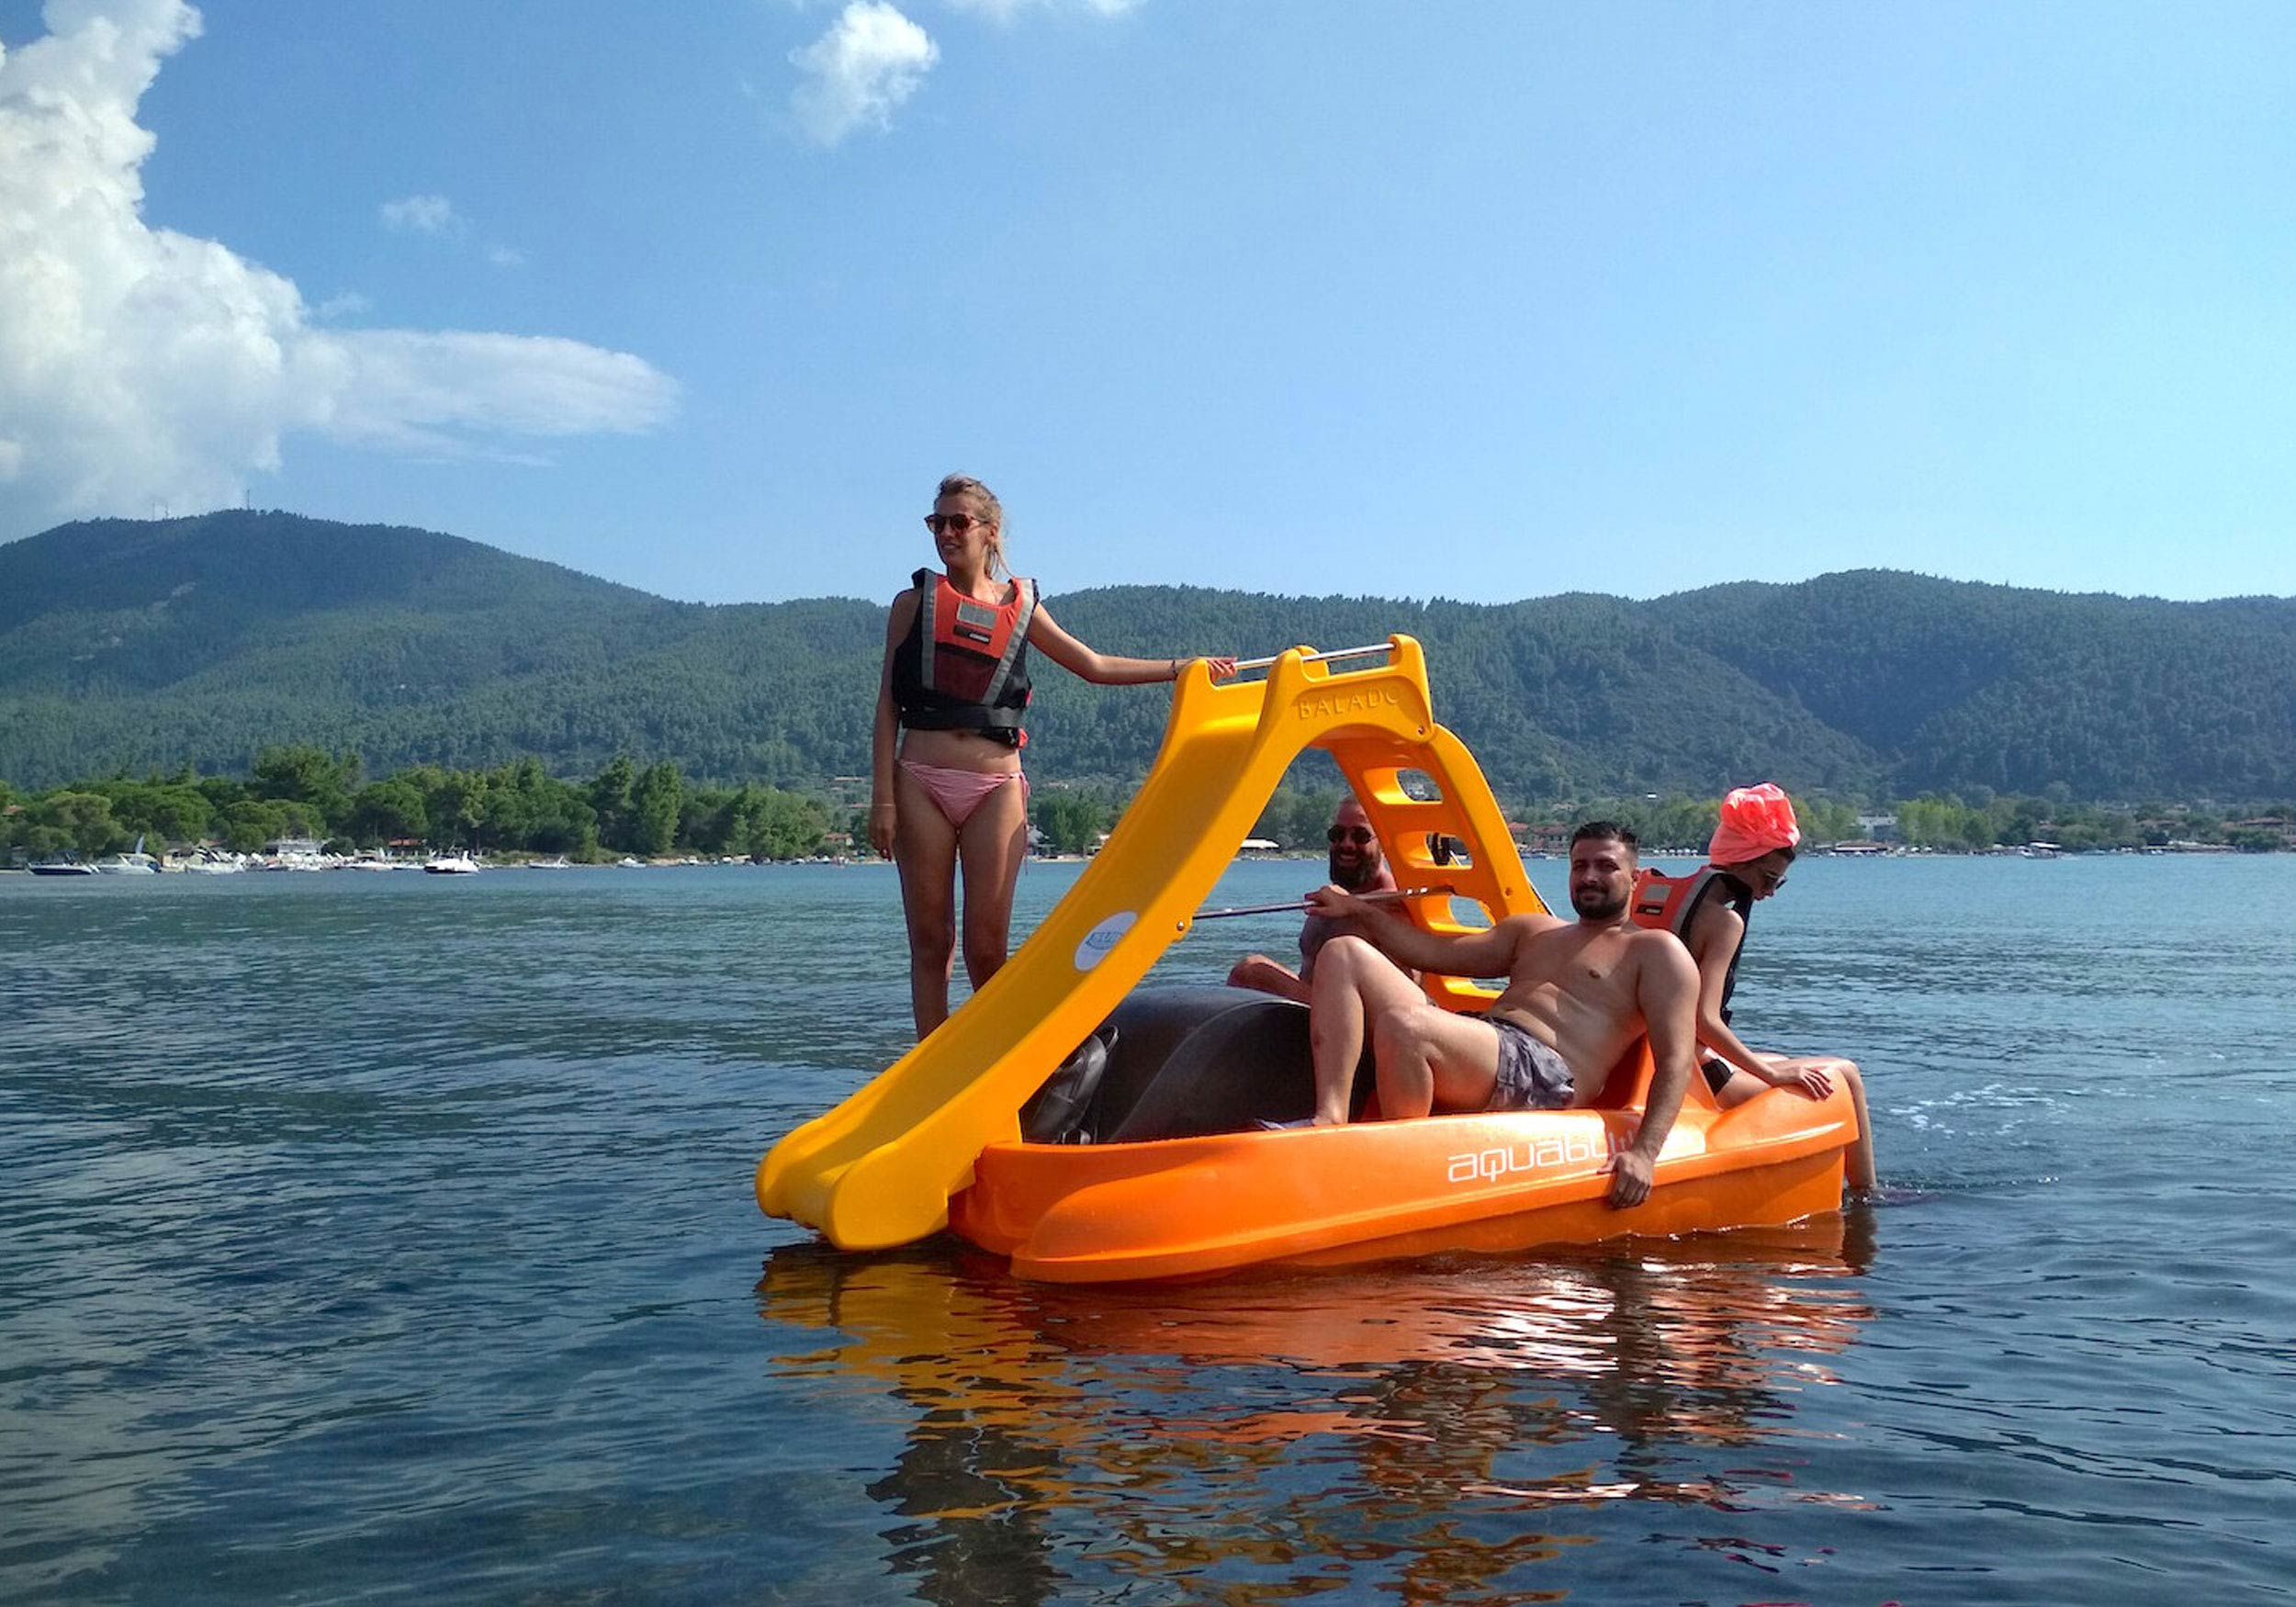 Group of young adults in a pedal boat